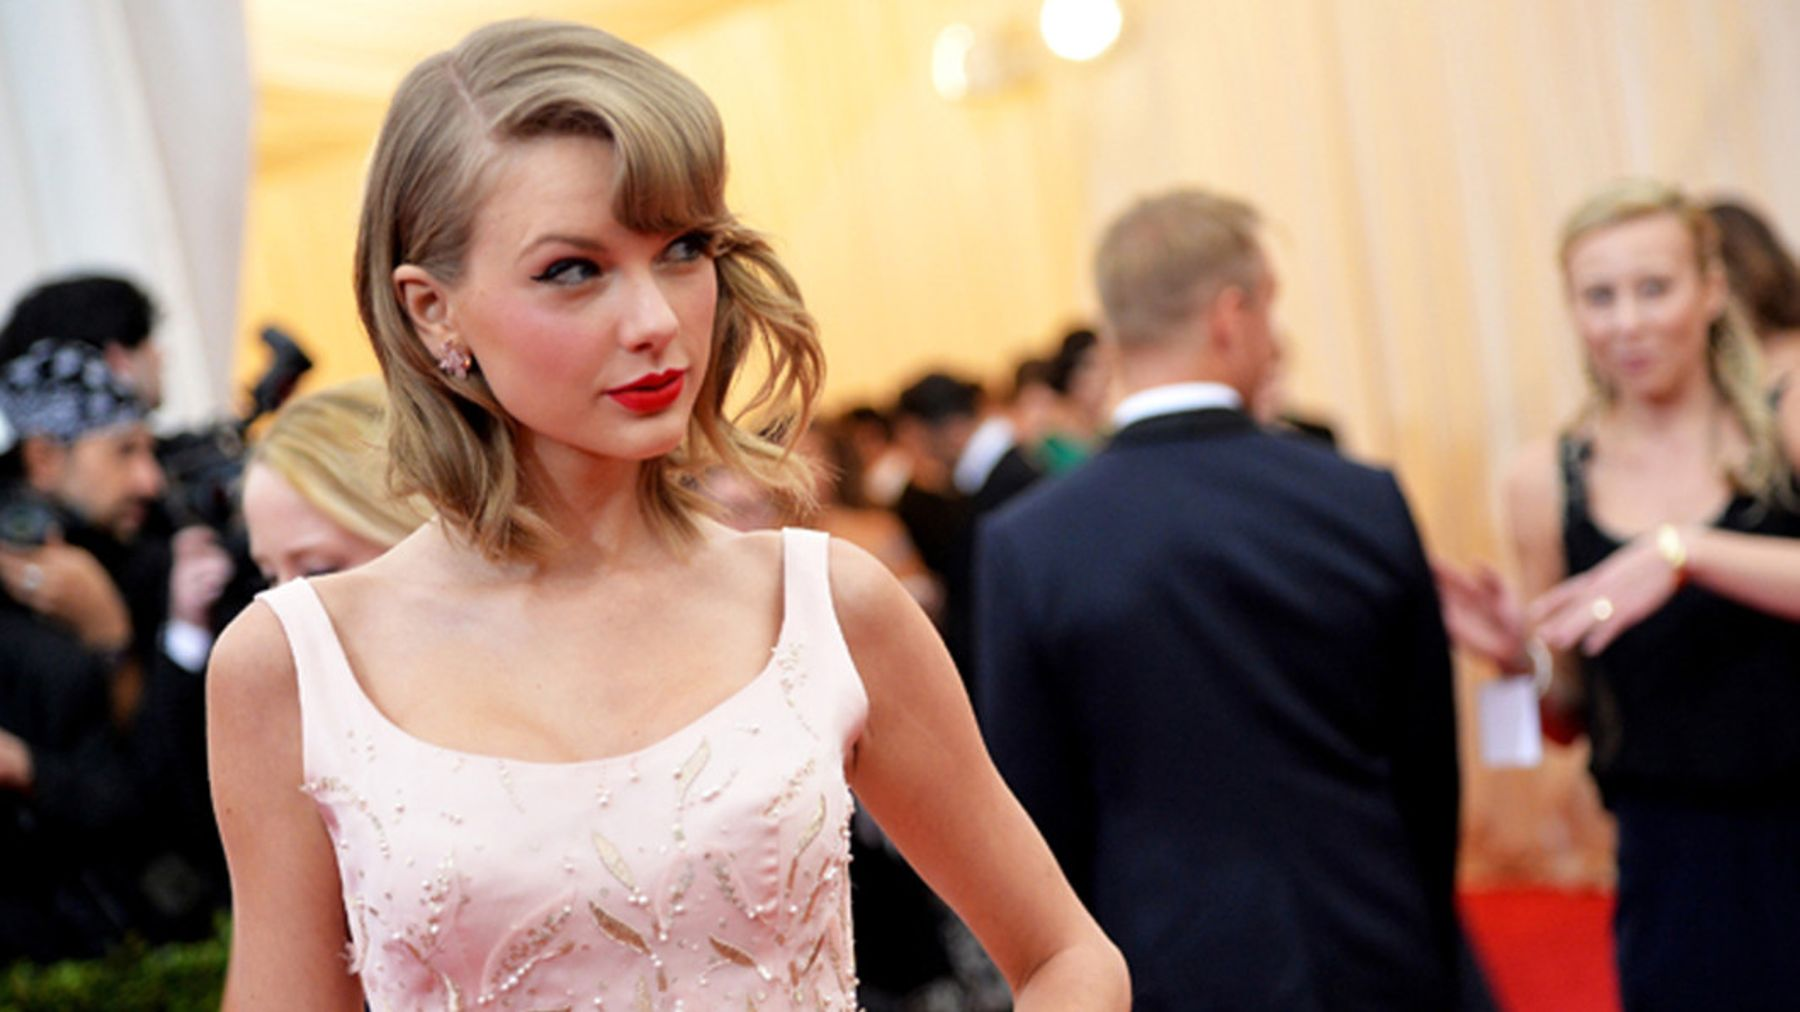 The 6 Style Secrets We Learned From Taylor Swift's Wardrobe | Grazia